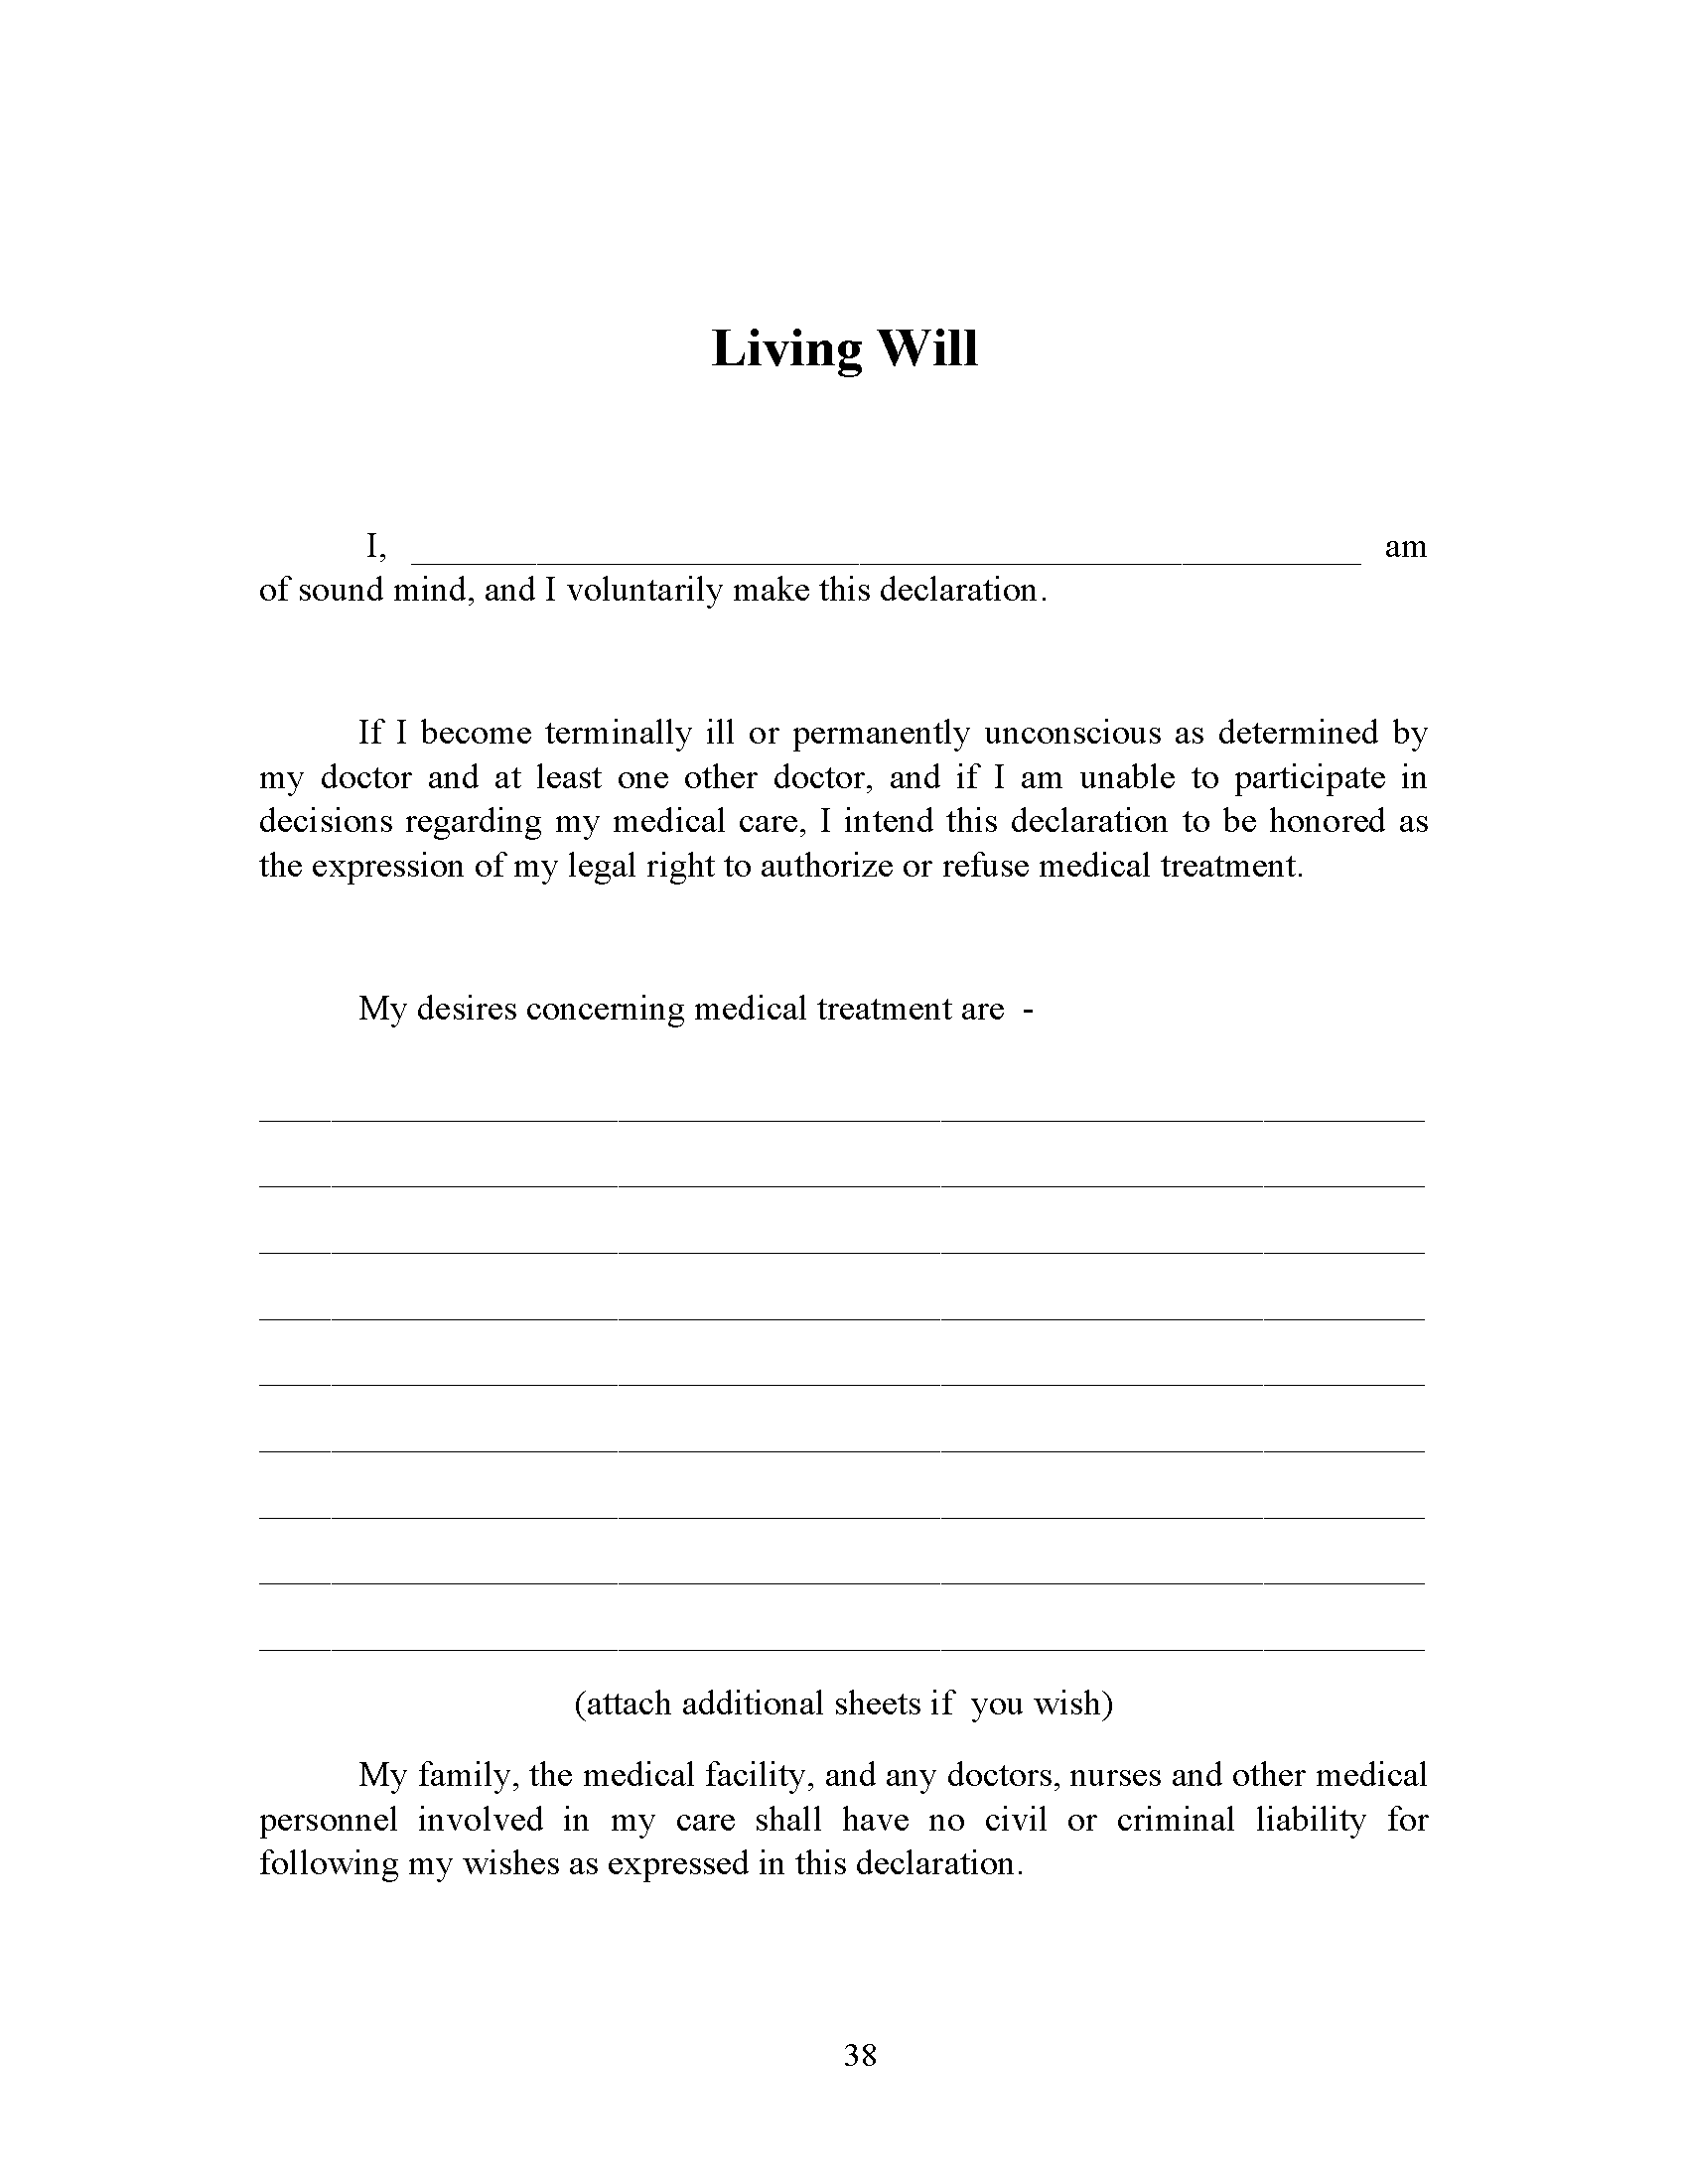 Michigan Living Will Fillable PDF Form